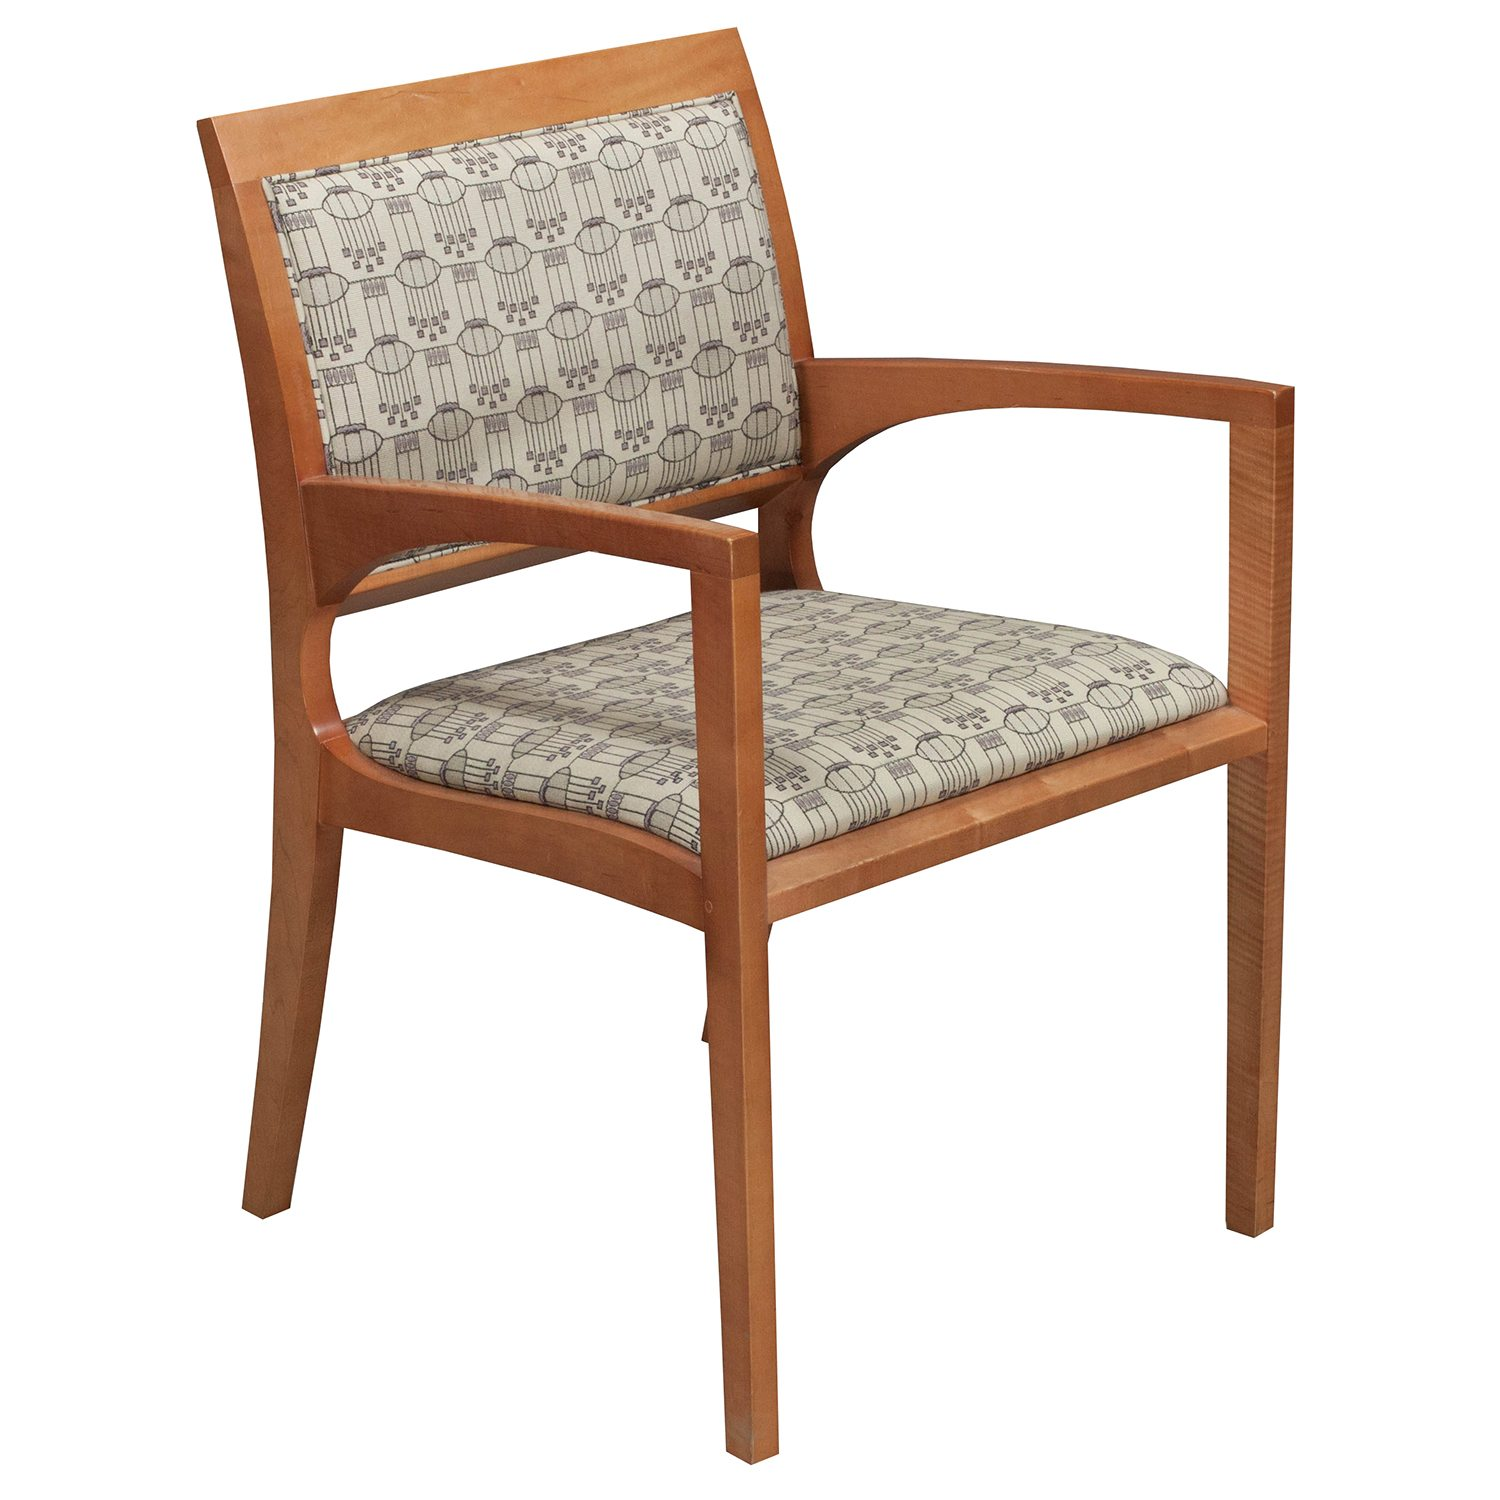 Patterned Chairs Bernhardt Used Wood Side Chair Creme Patterned National